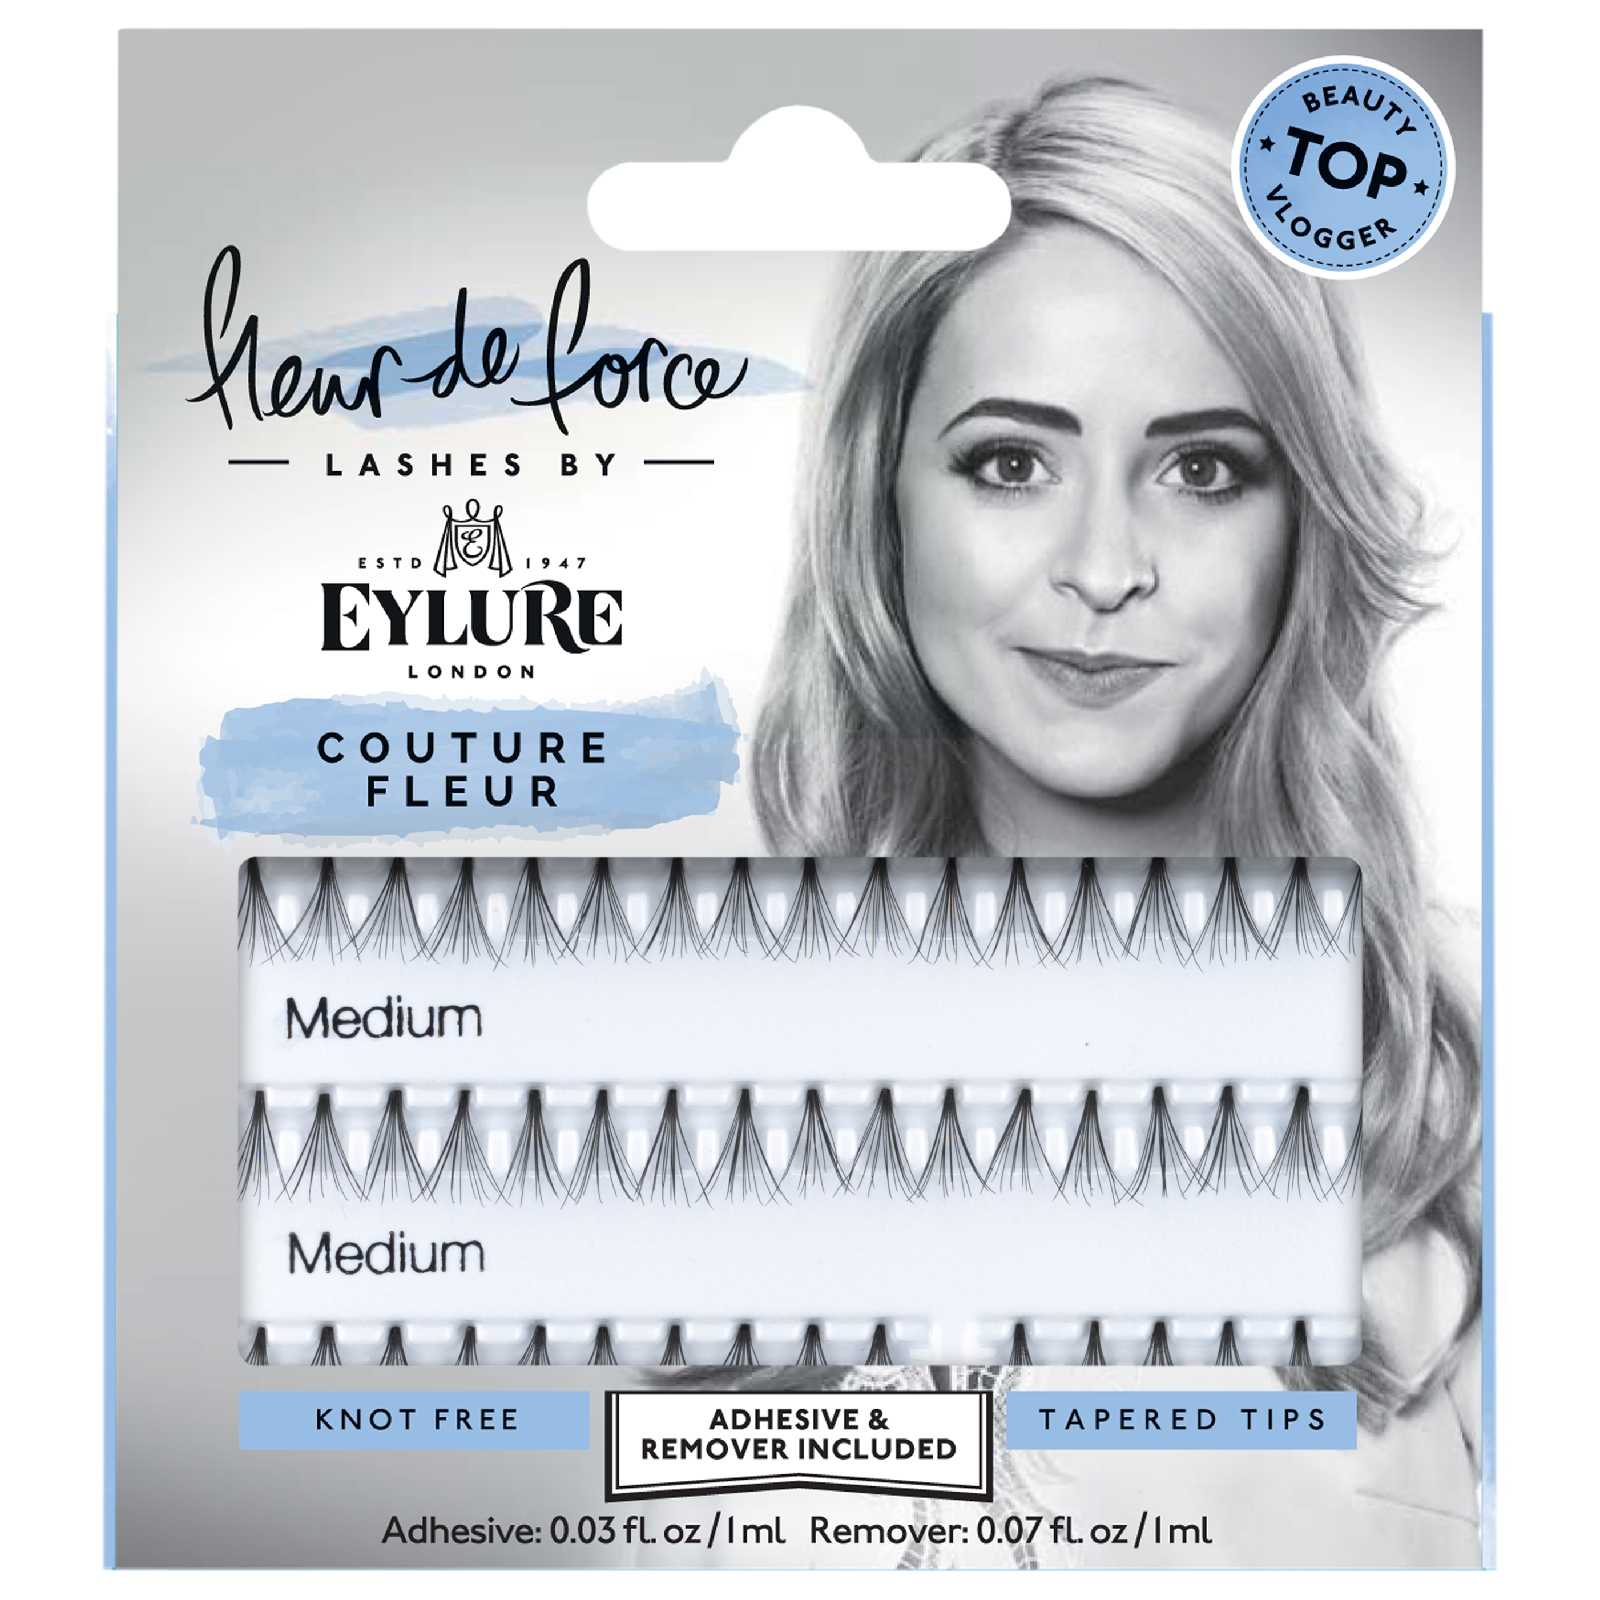 50ae8bdd6e1 Fleur de Force By Eylure Lashes - Couture Fleur (Individual Lashes) | Free  Shipping | Lookfantastic